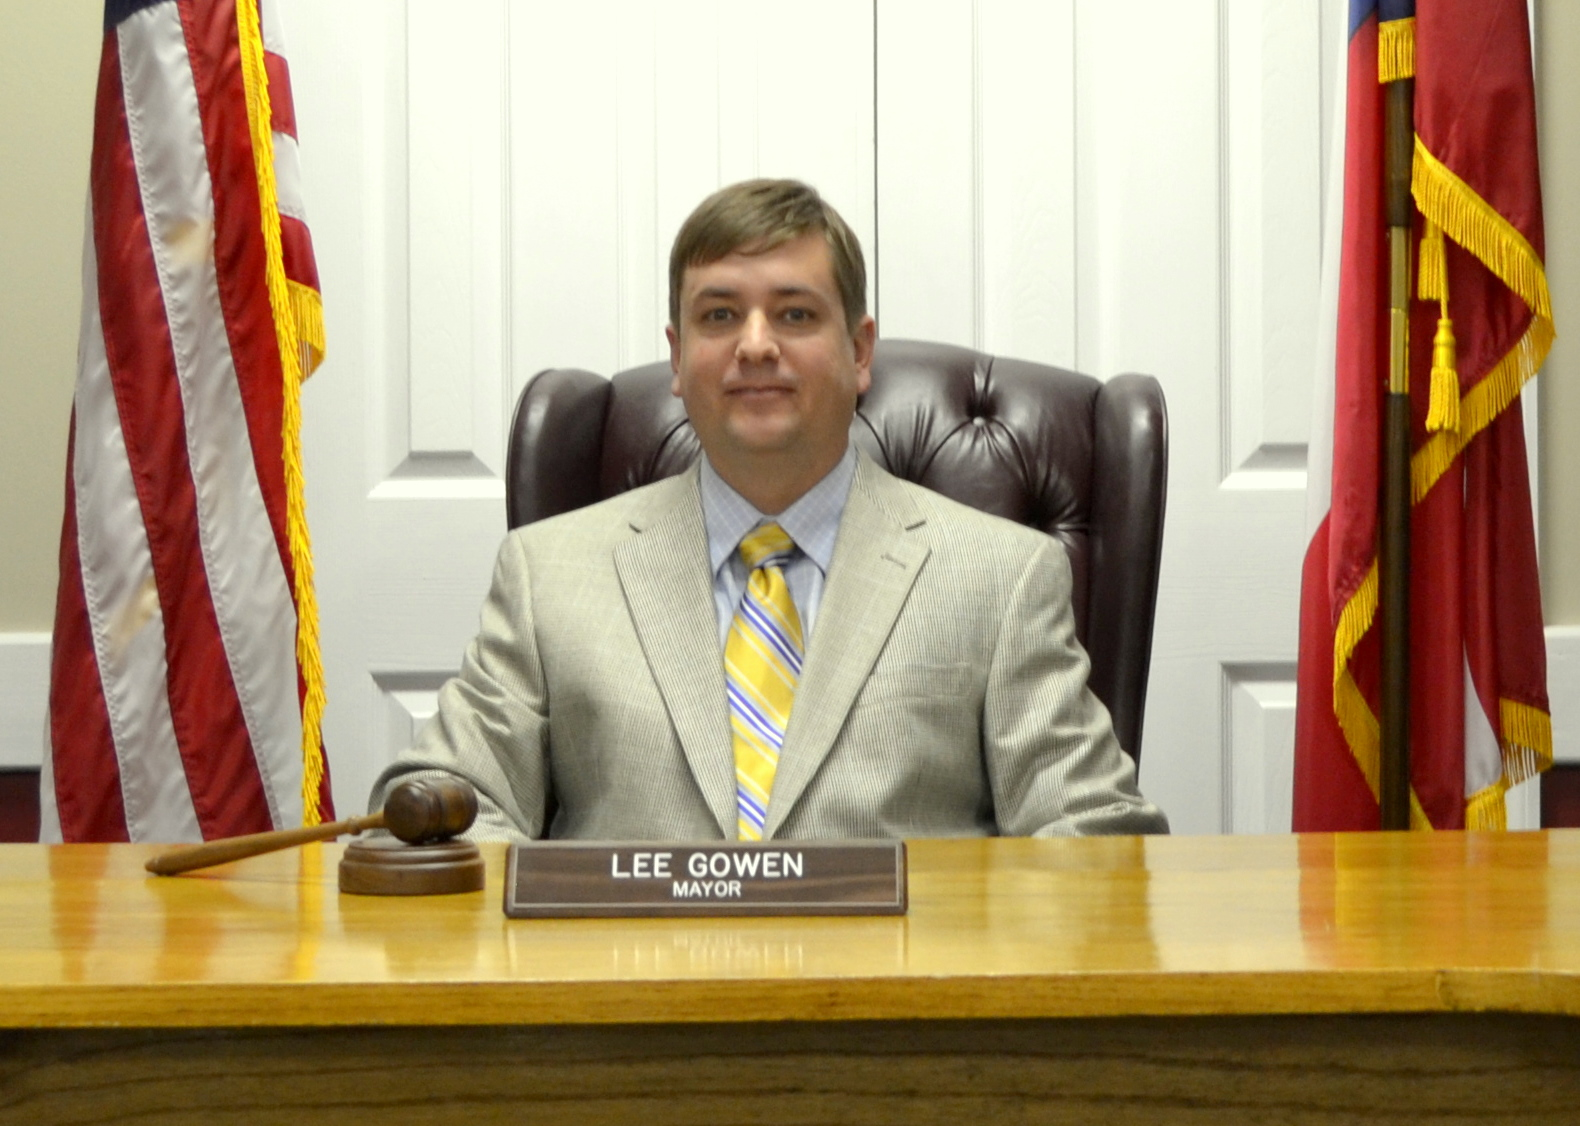 Mayor Lee Gowen